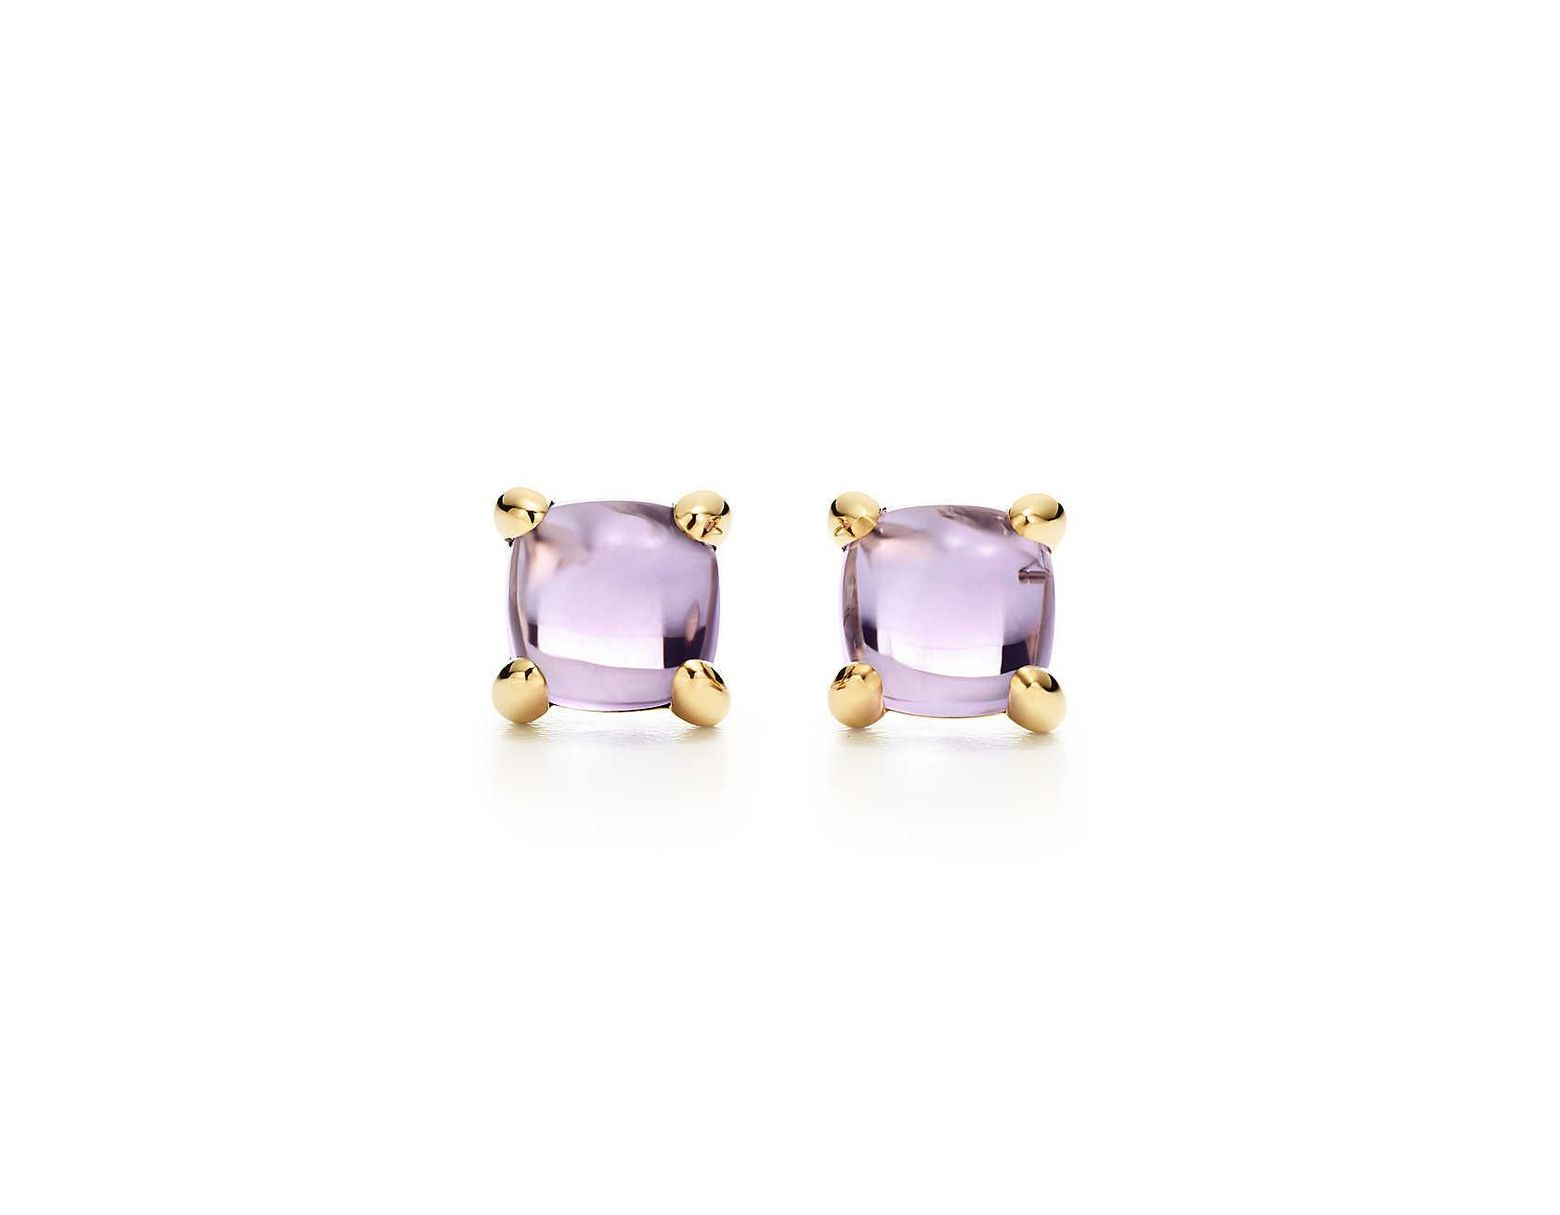 7ed4c3248 Tiffany & Co. Paloma's Sugar Stacks Earrings In 18k Gold With Amethysts in  Metallic - Lyst